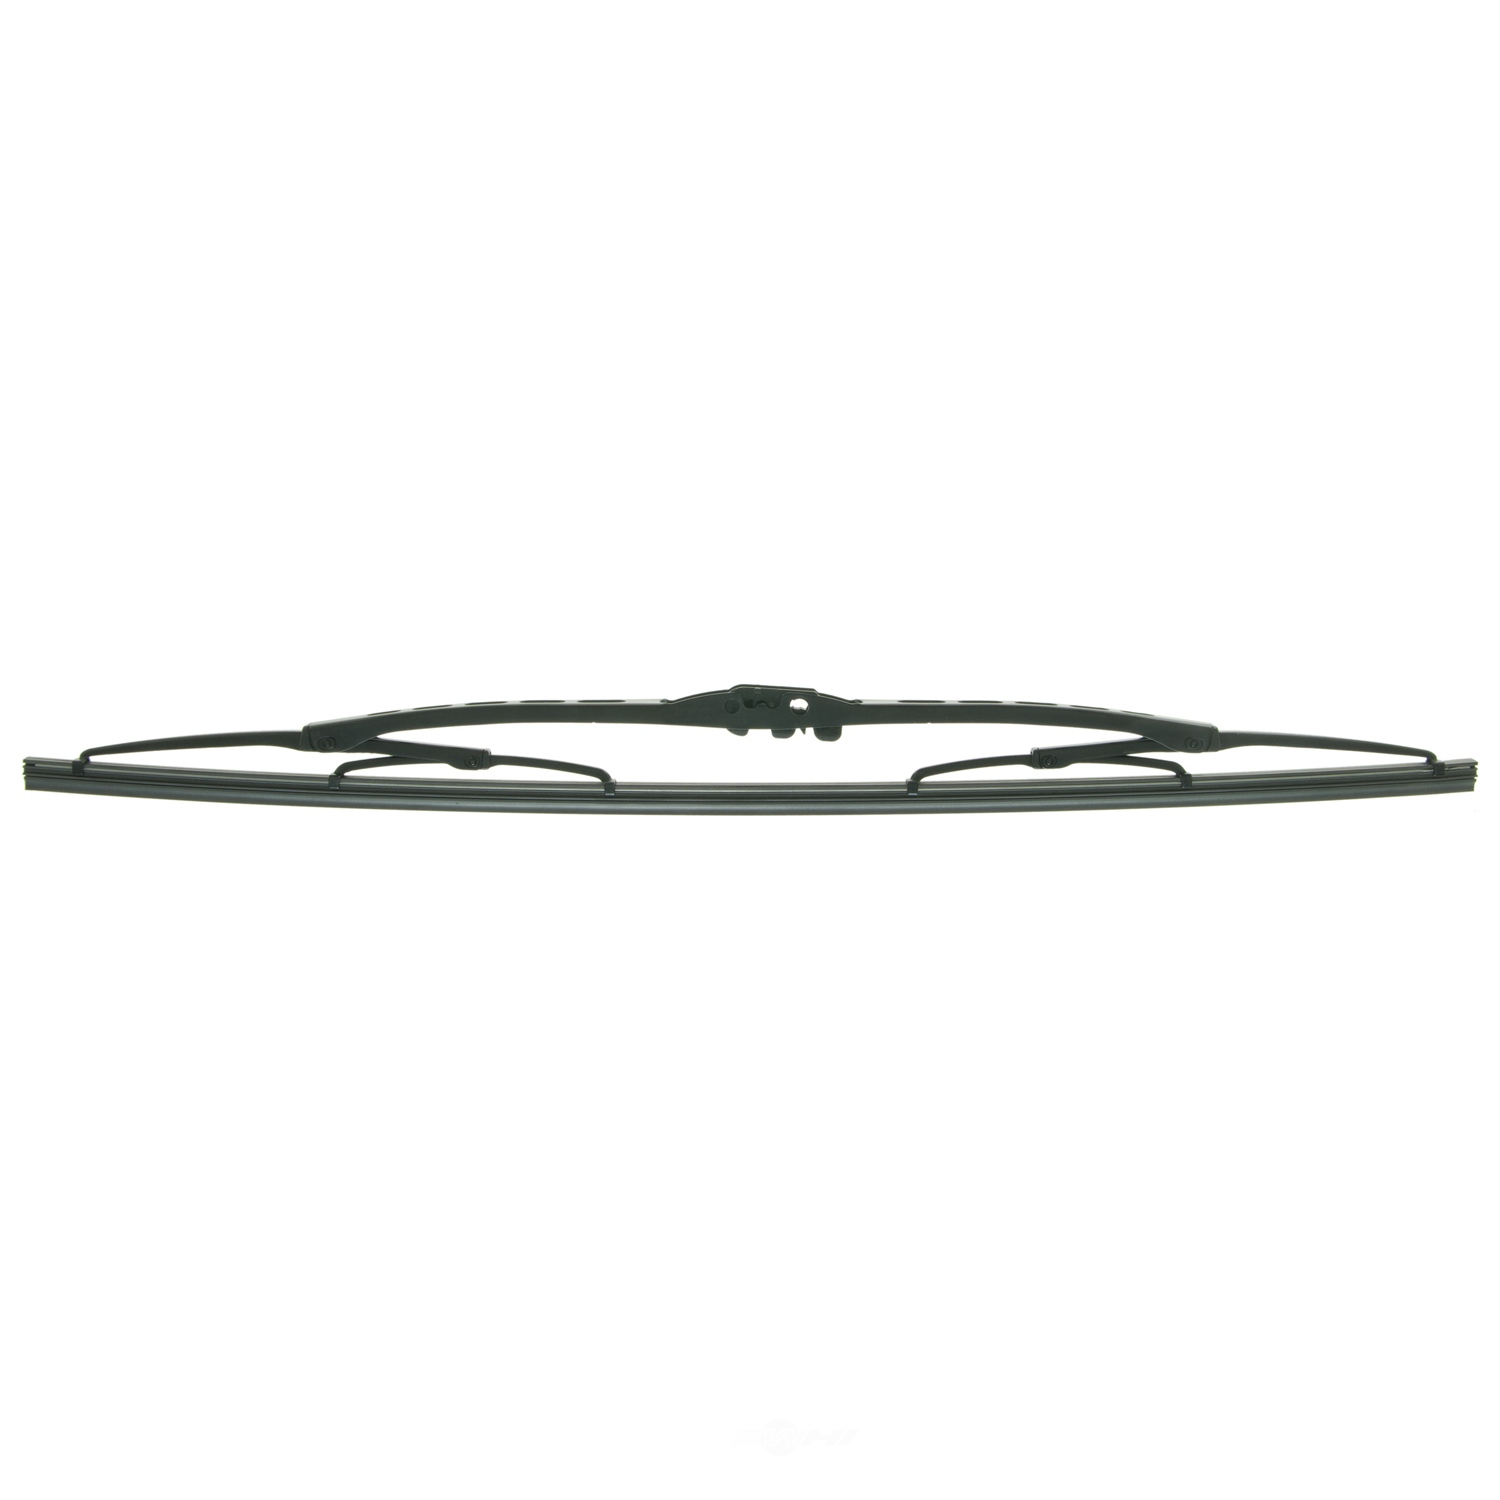 ANCO WIPER PRODUCTS - 97-series Wiper Blade (Front) - ANC 97-24